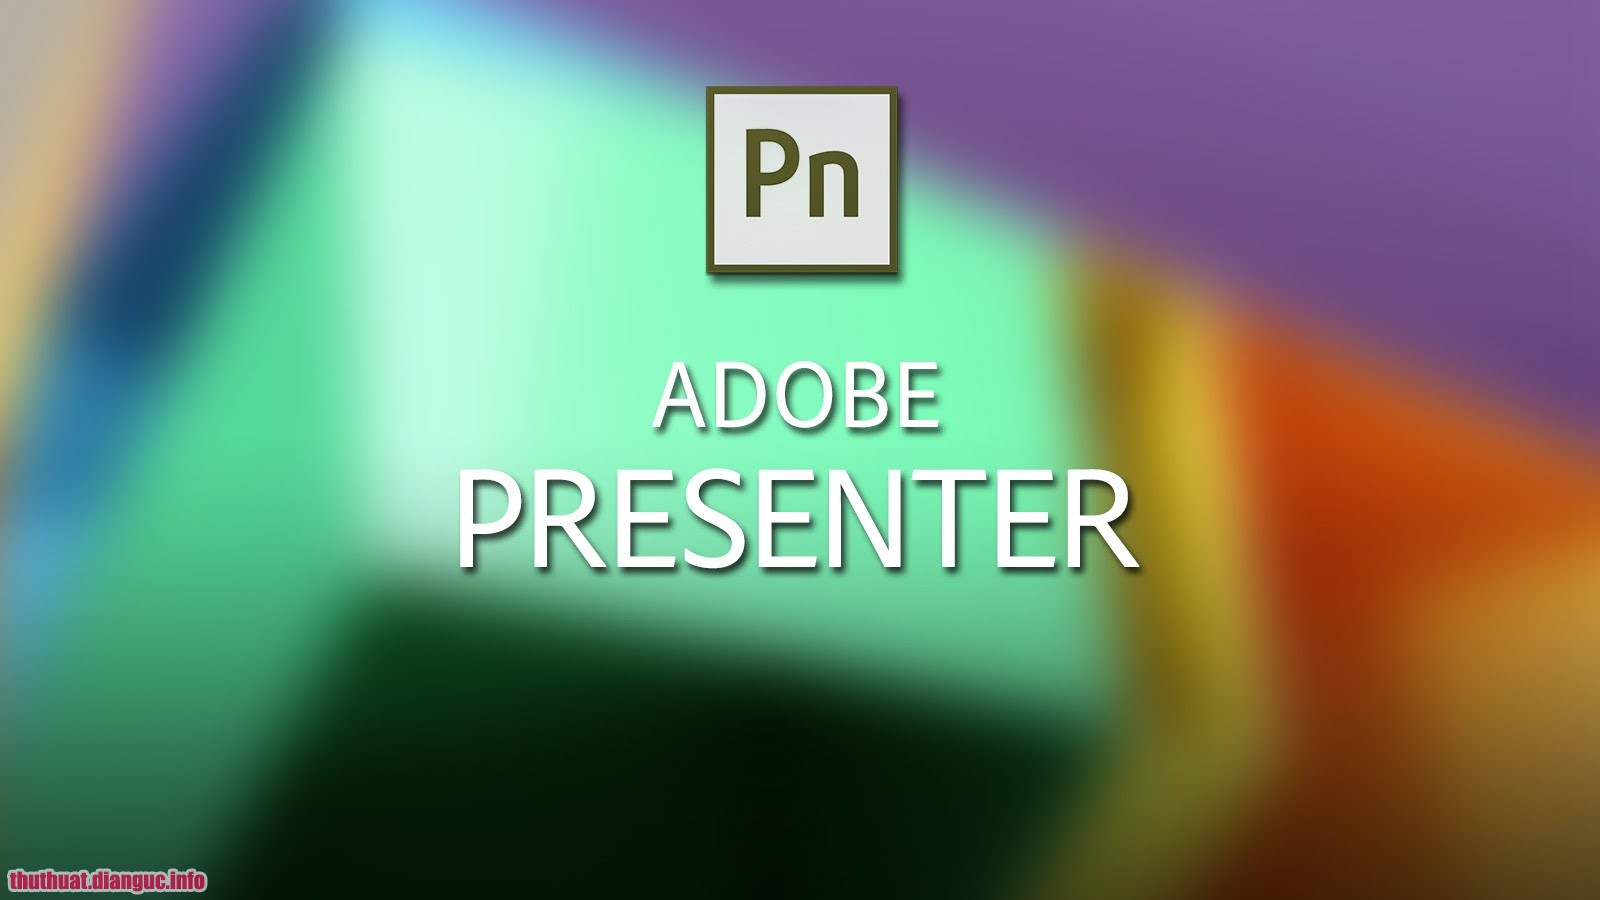 tie-mediumDownload Adobe Presenter 11 Full crack Fshare